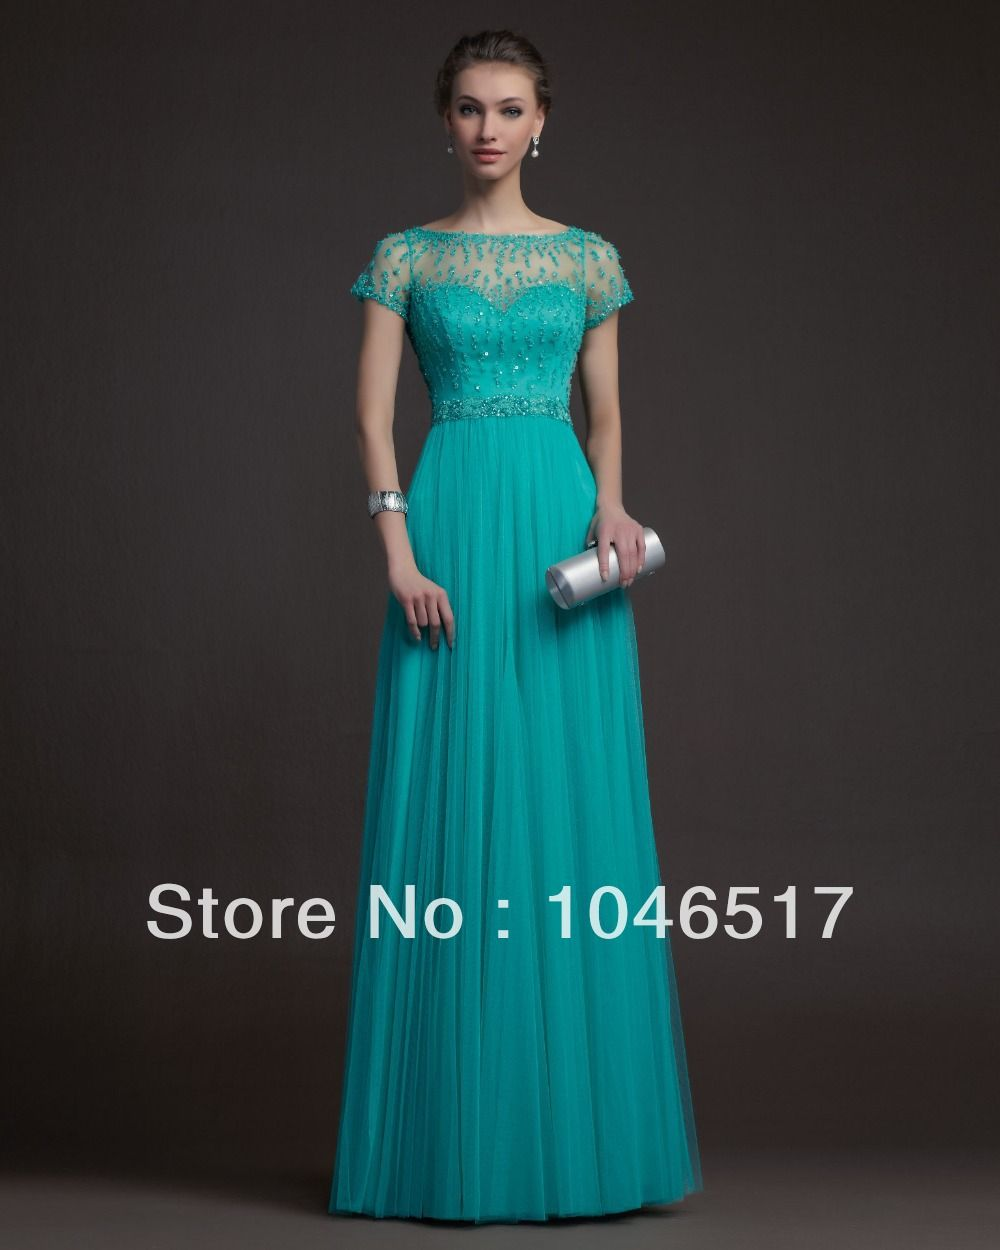 Free Shipping Teal Tulle Long Elegant Evening Dress Prom Formal ...